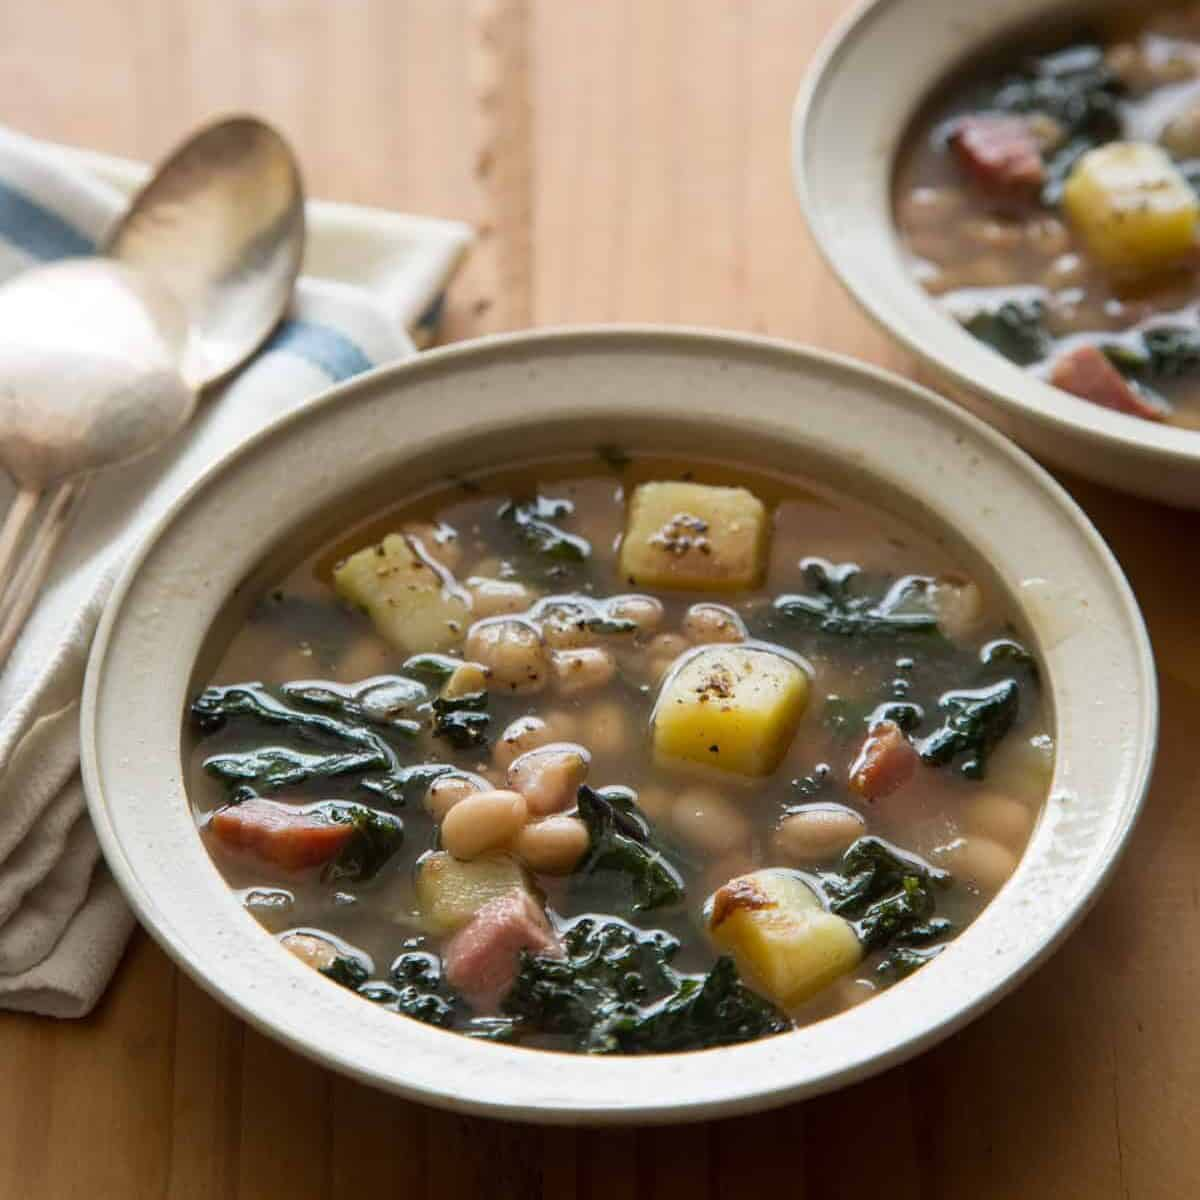 Heathy dinner recipe -  bowls of hearty white bean and kale soup with napkins and spoons.